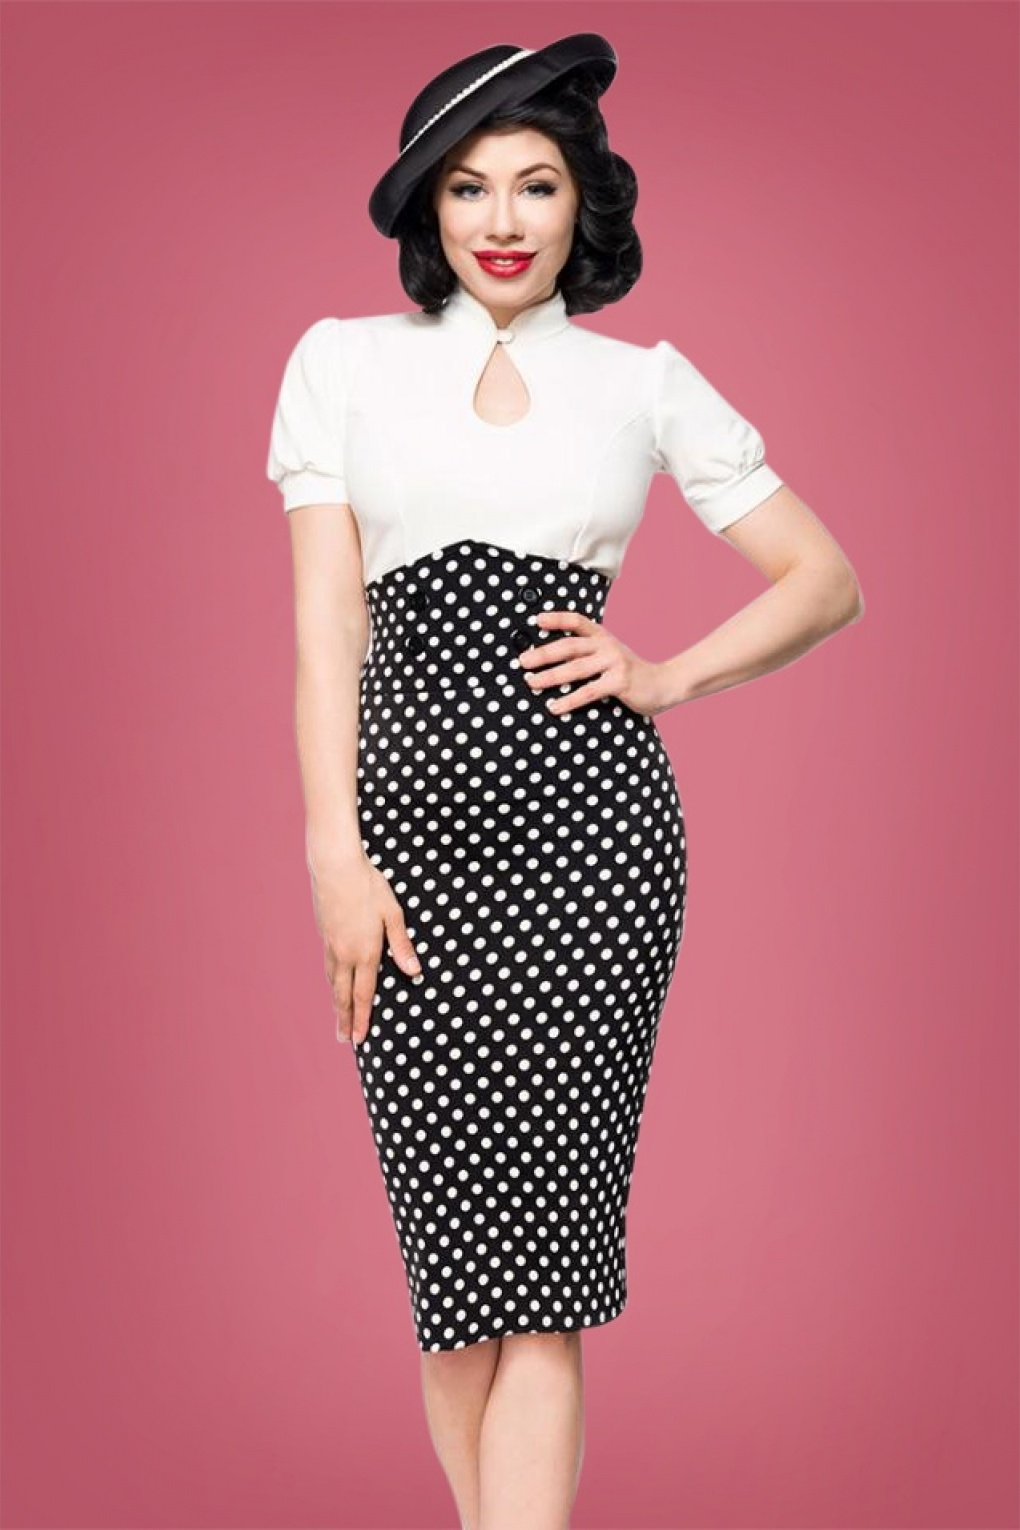 Polka Dot Dresses: 20s, 30s, 40s, 50s, 60s 50s Andrea Polkadot Pencil Skirt in Black £35.58 AT vintagedancer.com